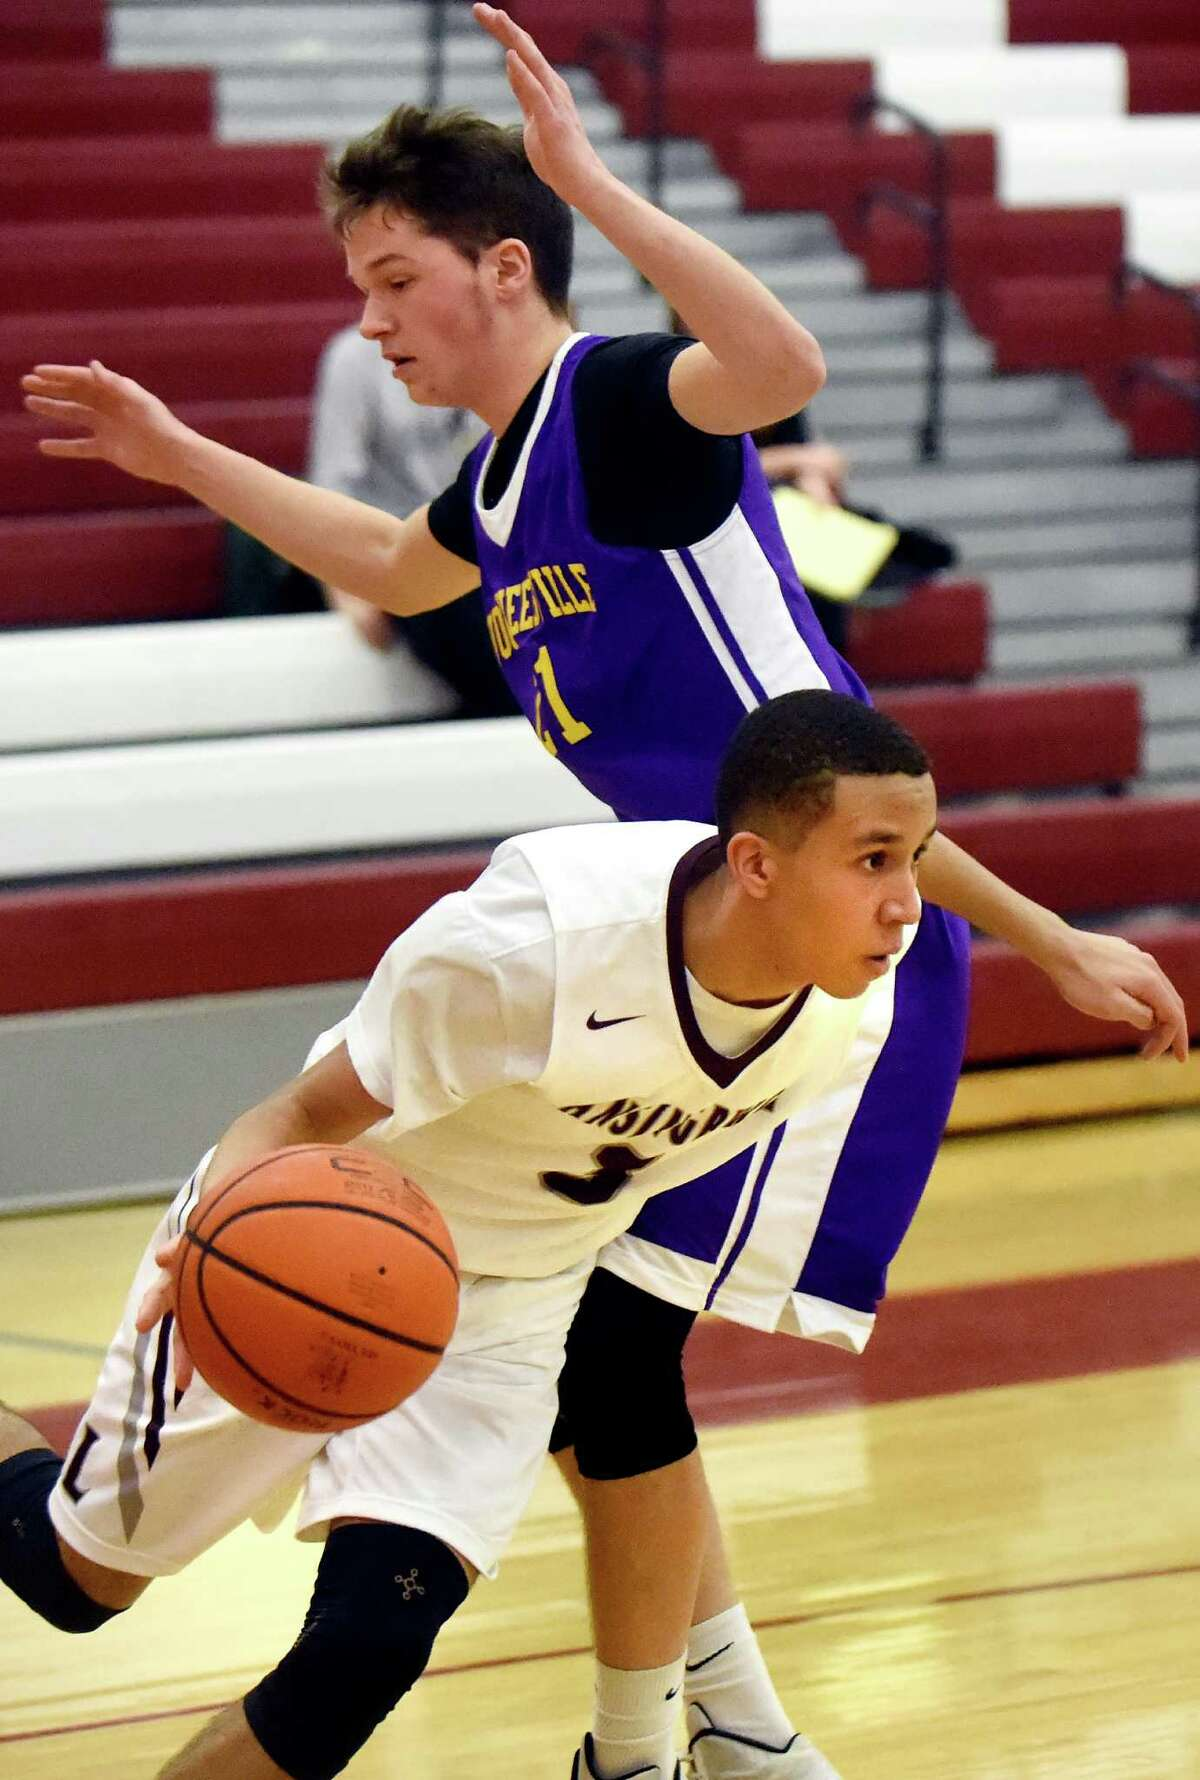 Lansingburgh's Jio Canty, in front, drives around Voorheesville's Alex Giordano during their basketball game on Friday, Jan. 8, 2016, at Lansingburgh High in Lansingburgh, N.Y. (Cindy Schultz / Times Union)